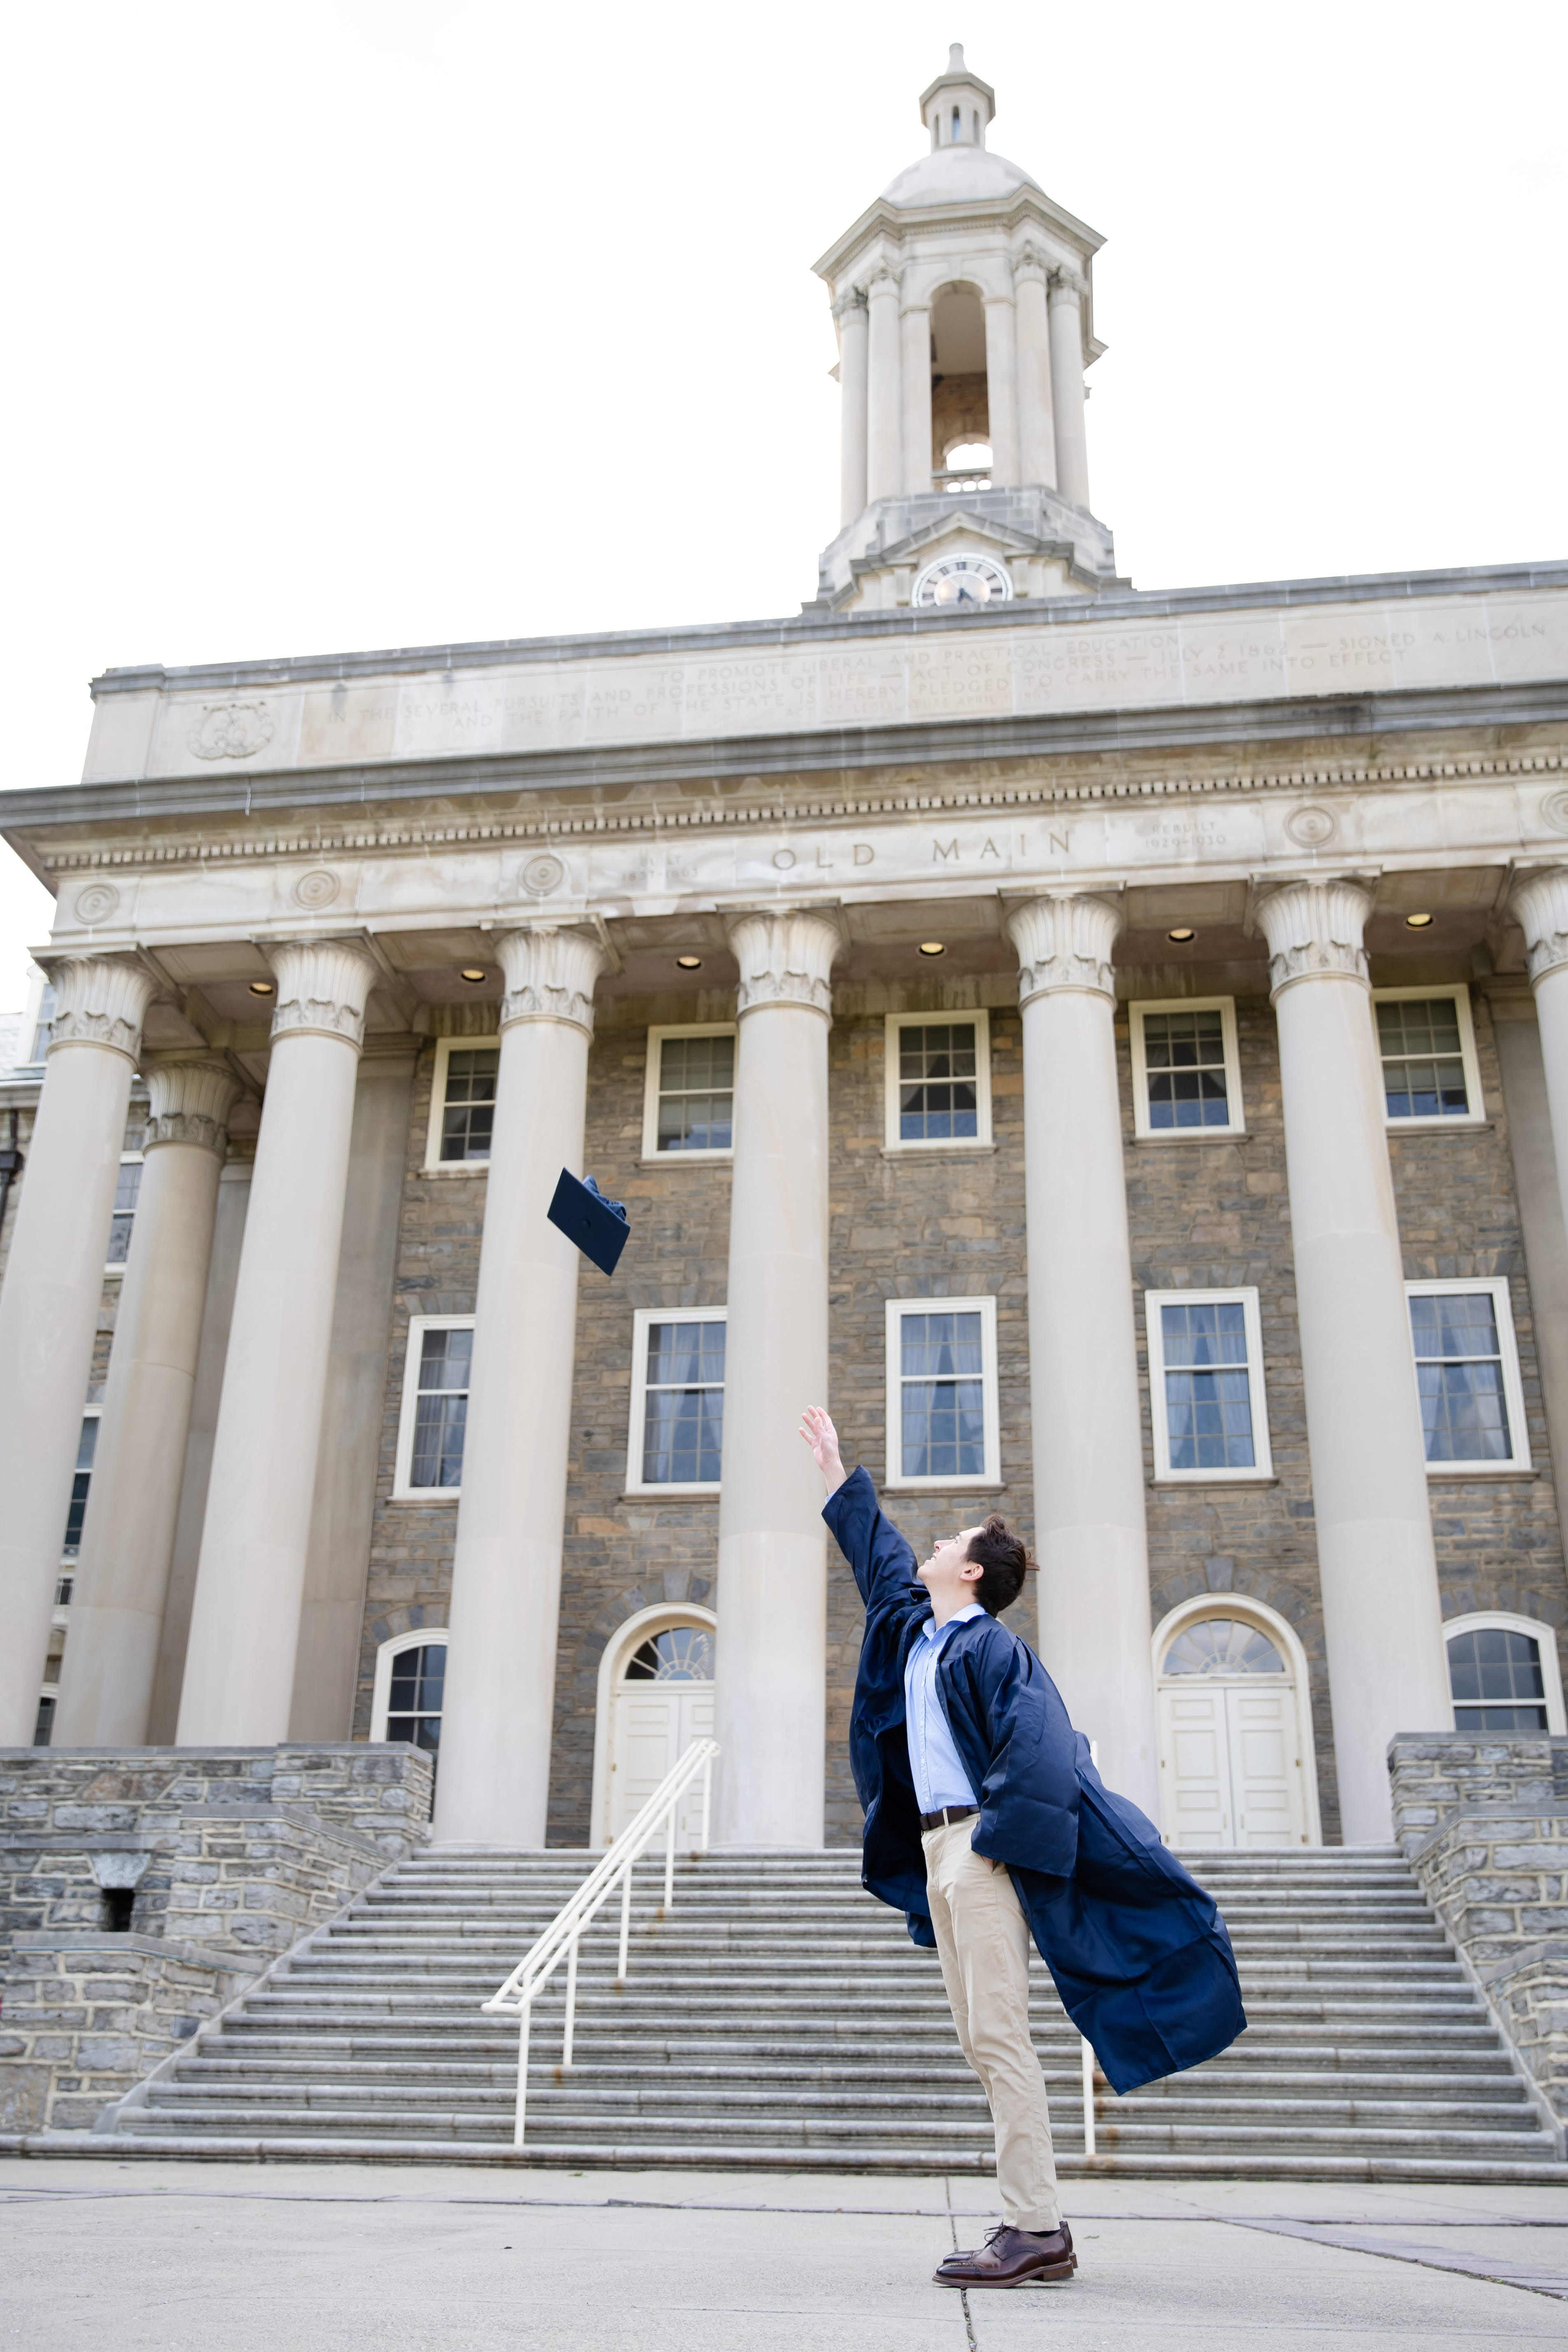 PSU Class of 2020 graduate at Old Main Penn State campus